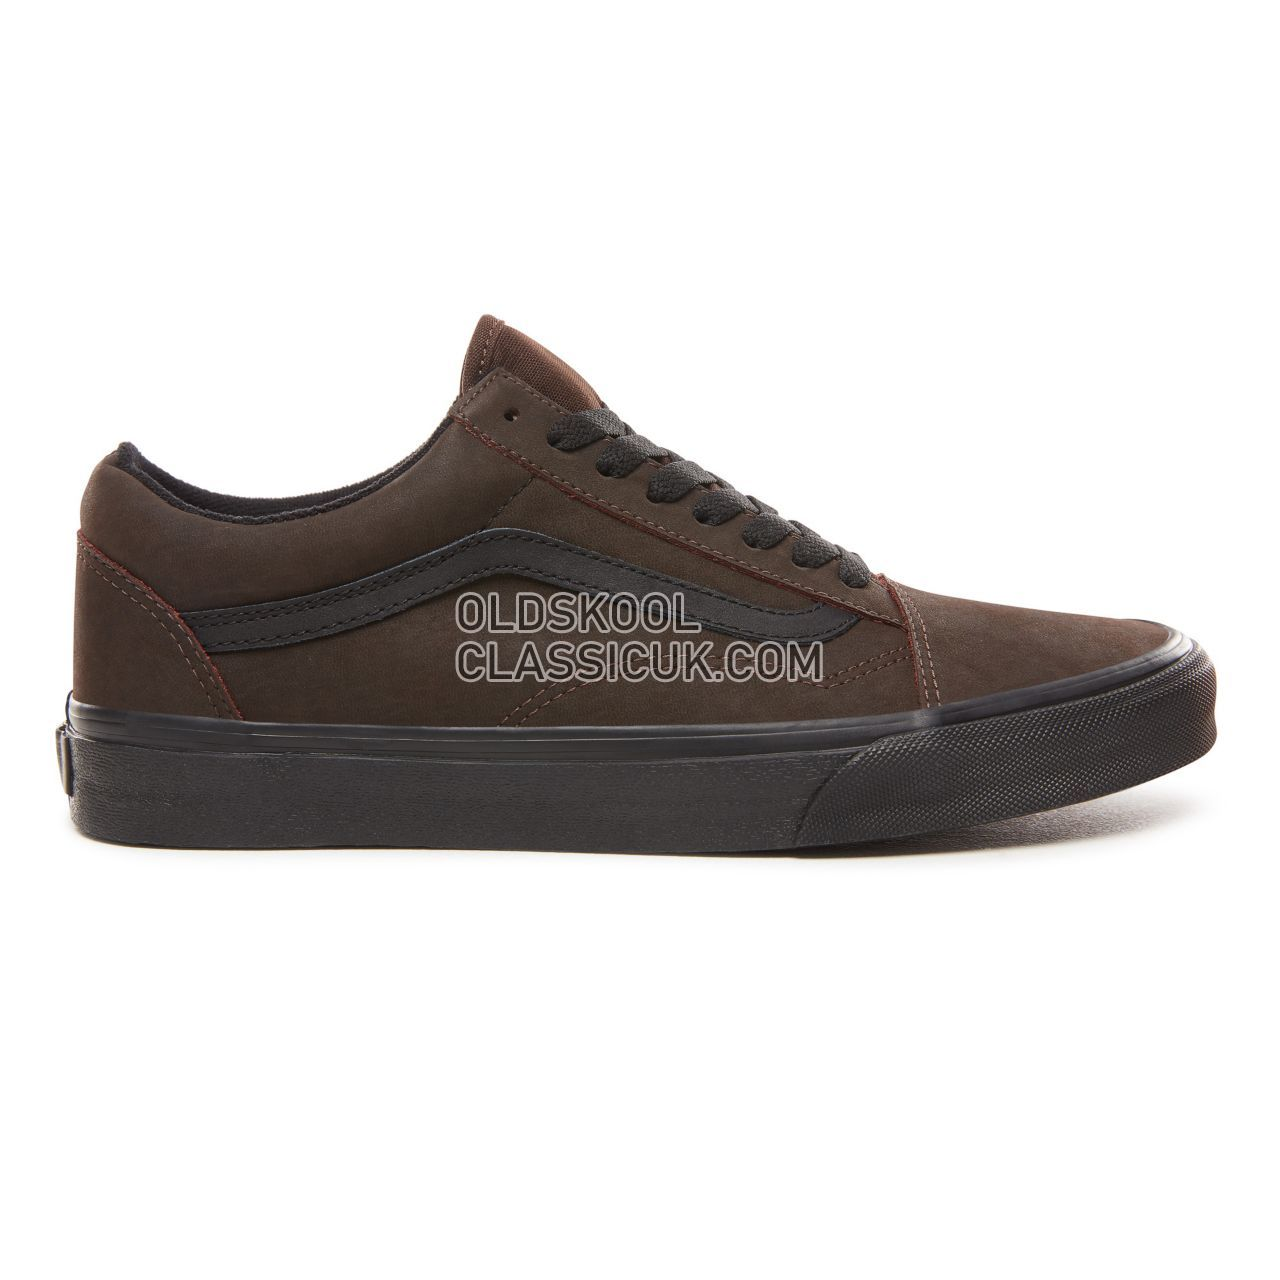 Vans Vansbuck Old Skool Sneakers Mens Womens Unisex (Vansbuck) Demitasse/Black VN0A38G1UPF Shoes